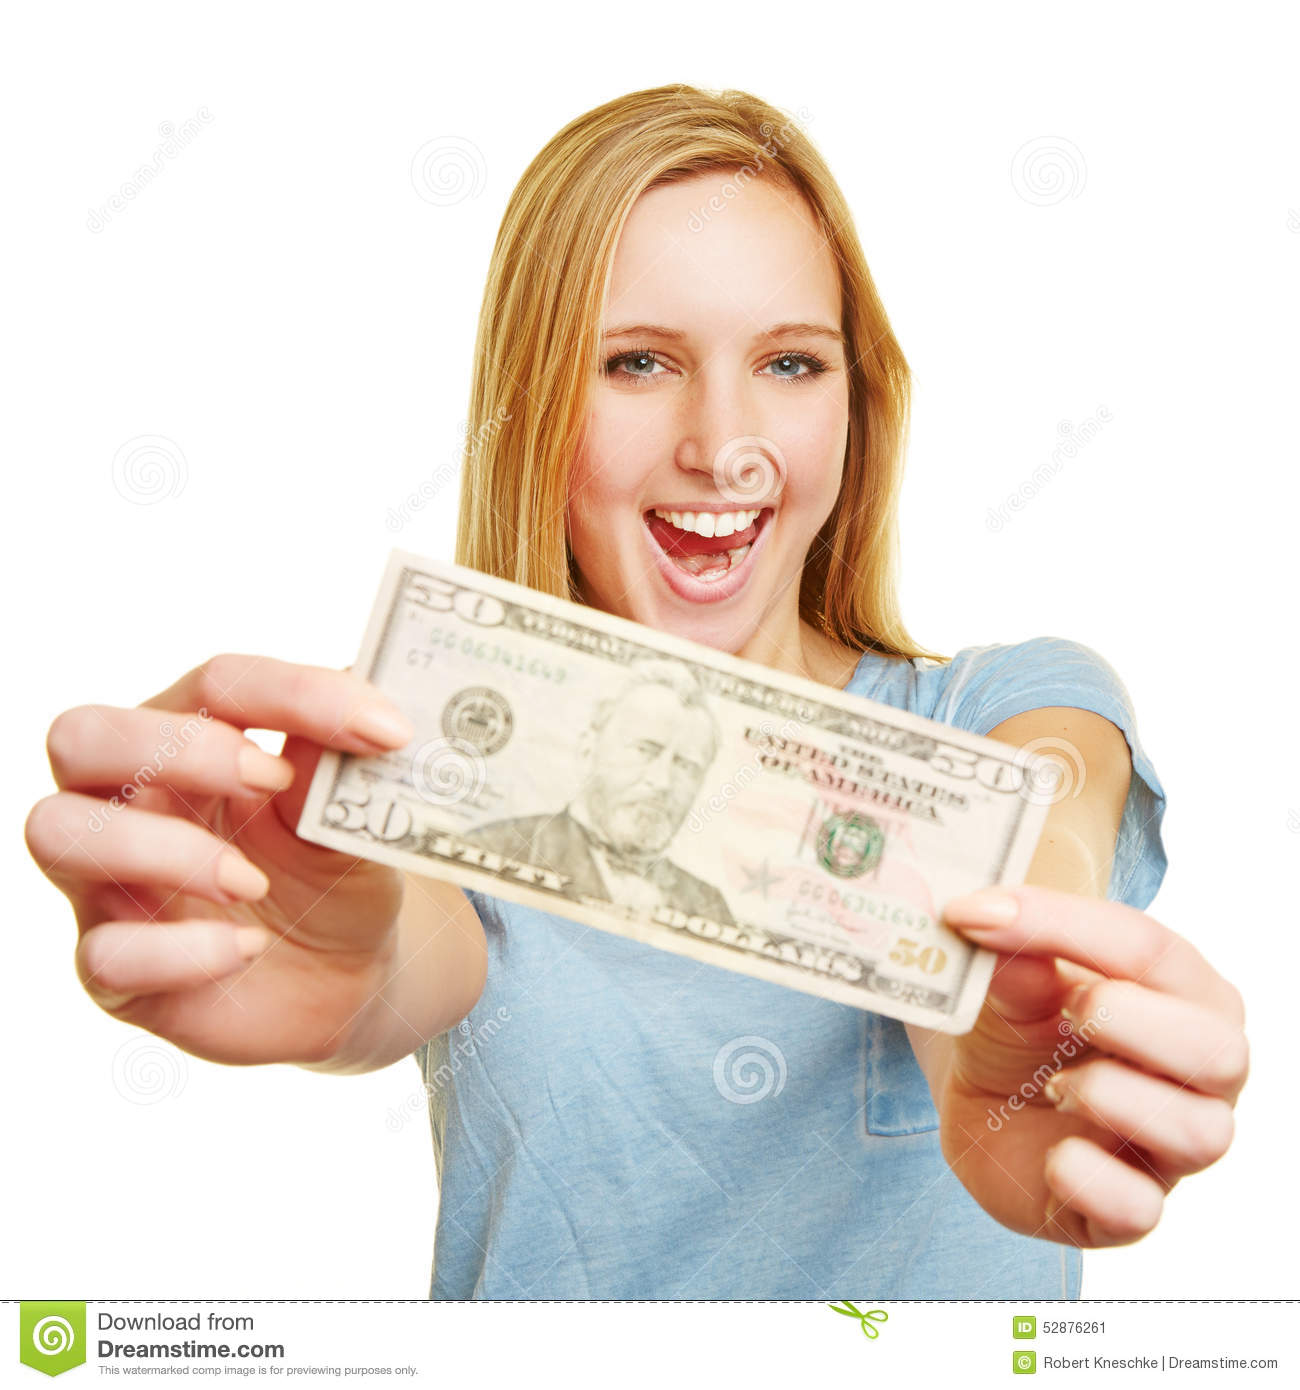 Happy young woman showing 50 dollar bill